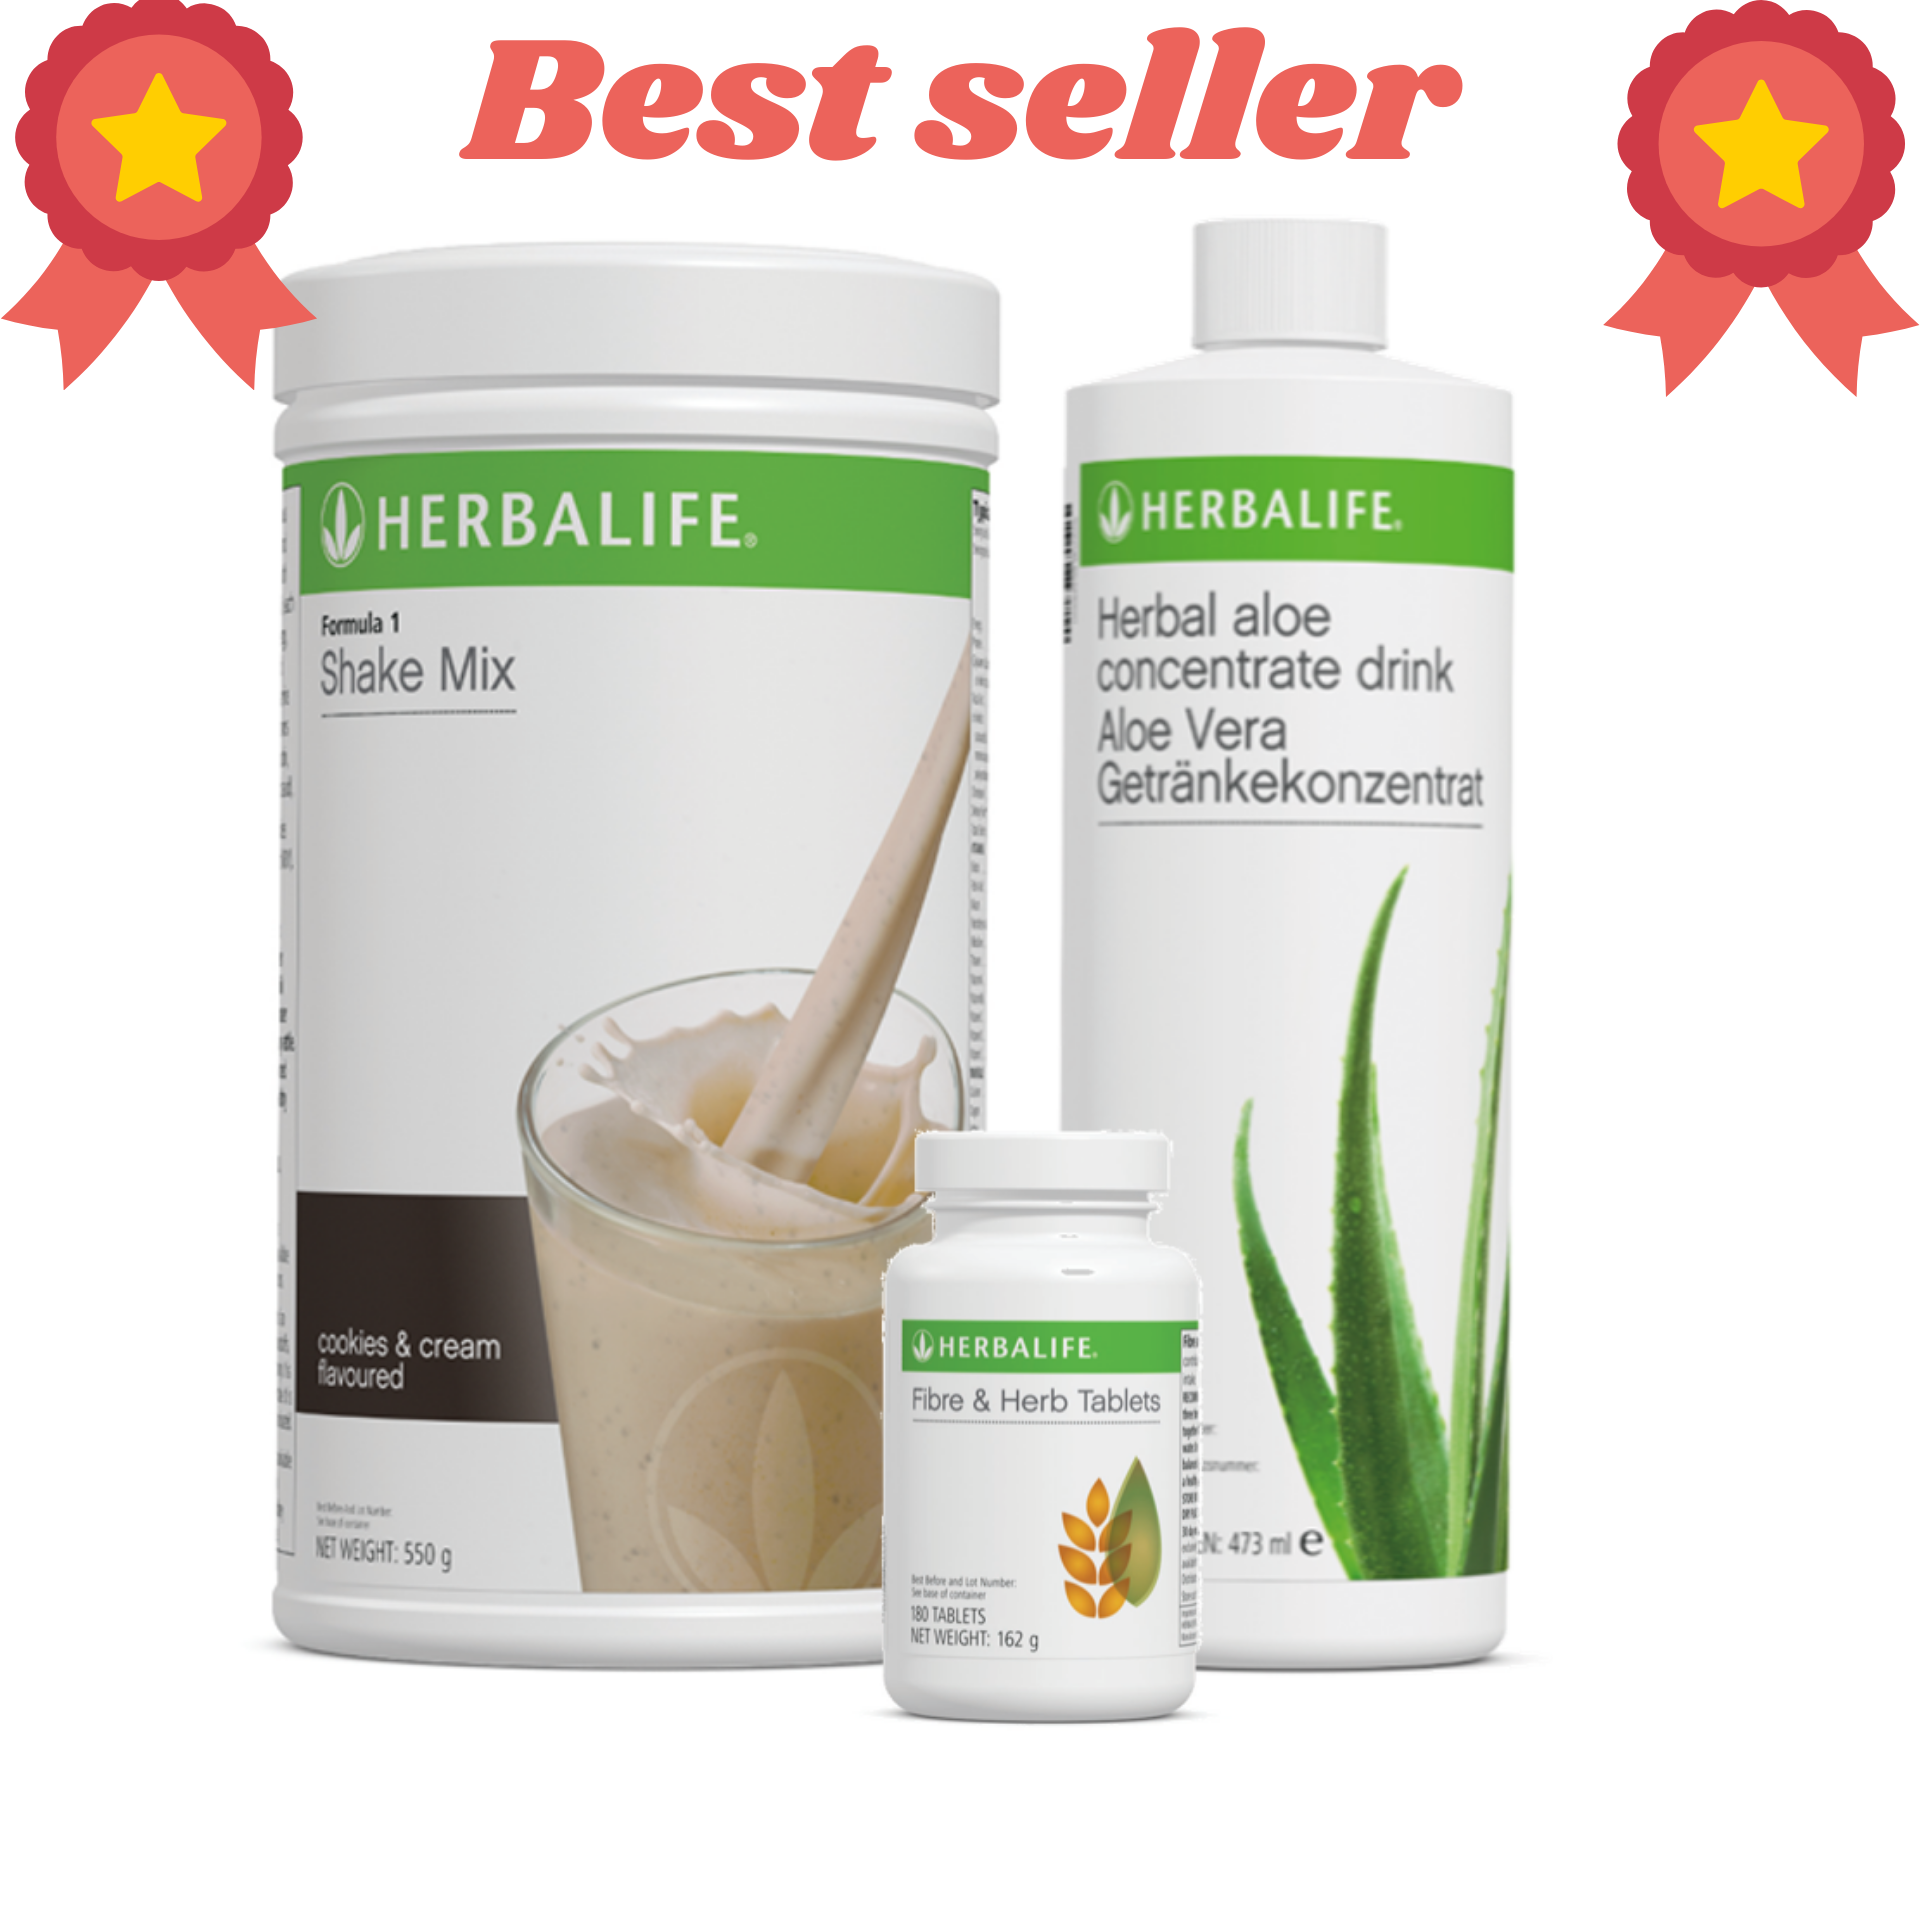 Herbalife Combo Hl South Africa Store